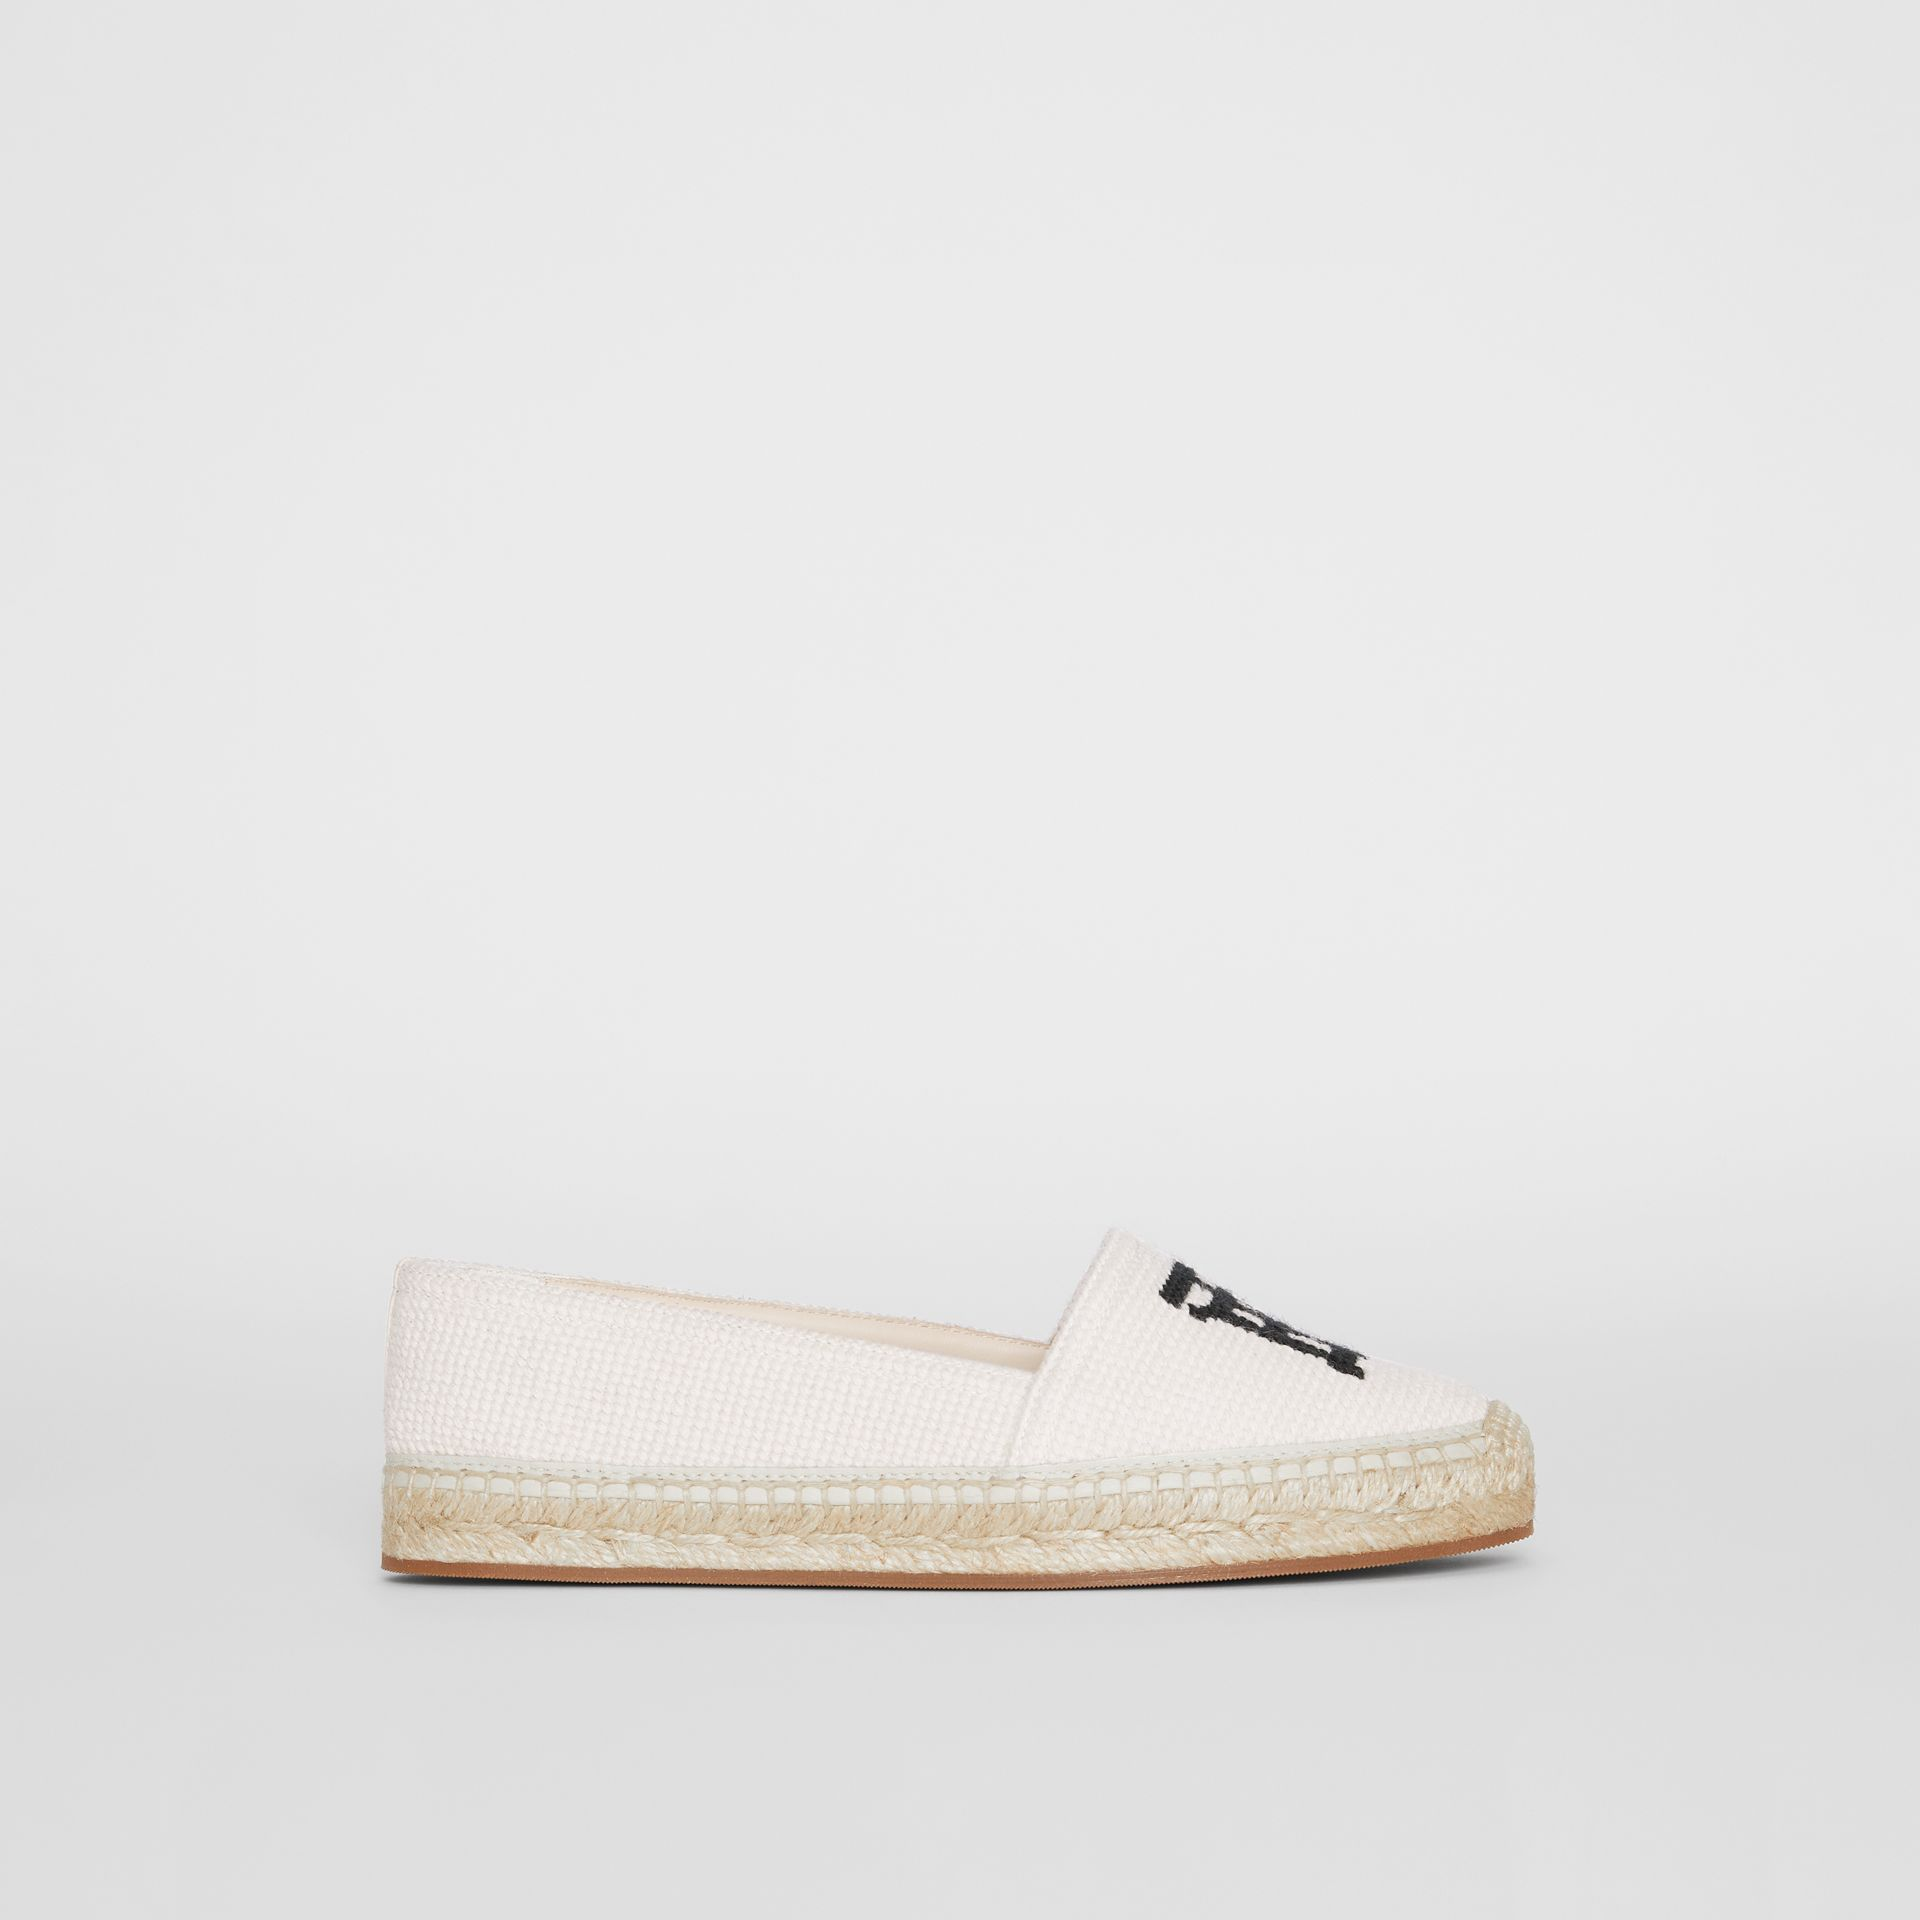 Monogram Motif Cotton and Leather Espadrilles in Ecru/black - Women | Burberry - gallery image 4